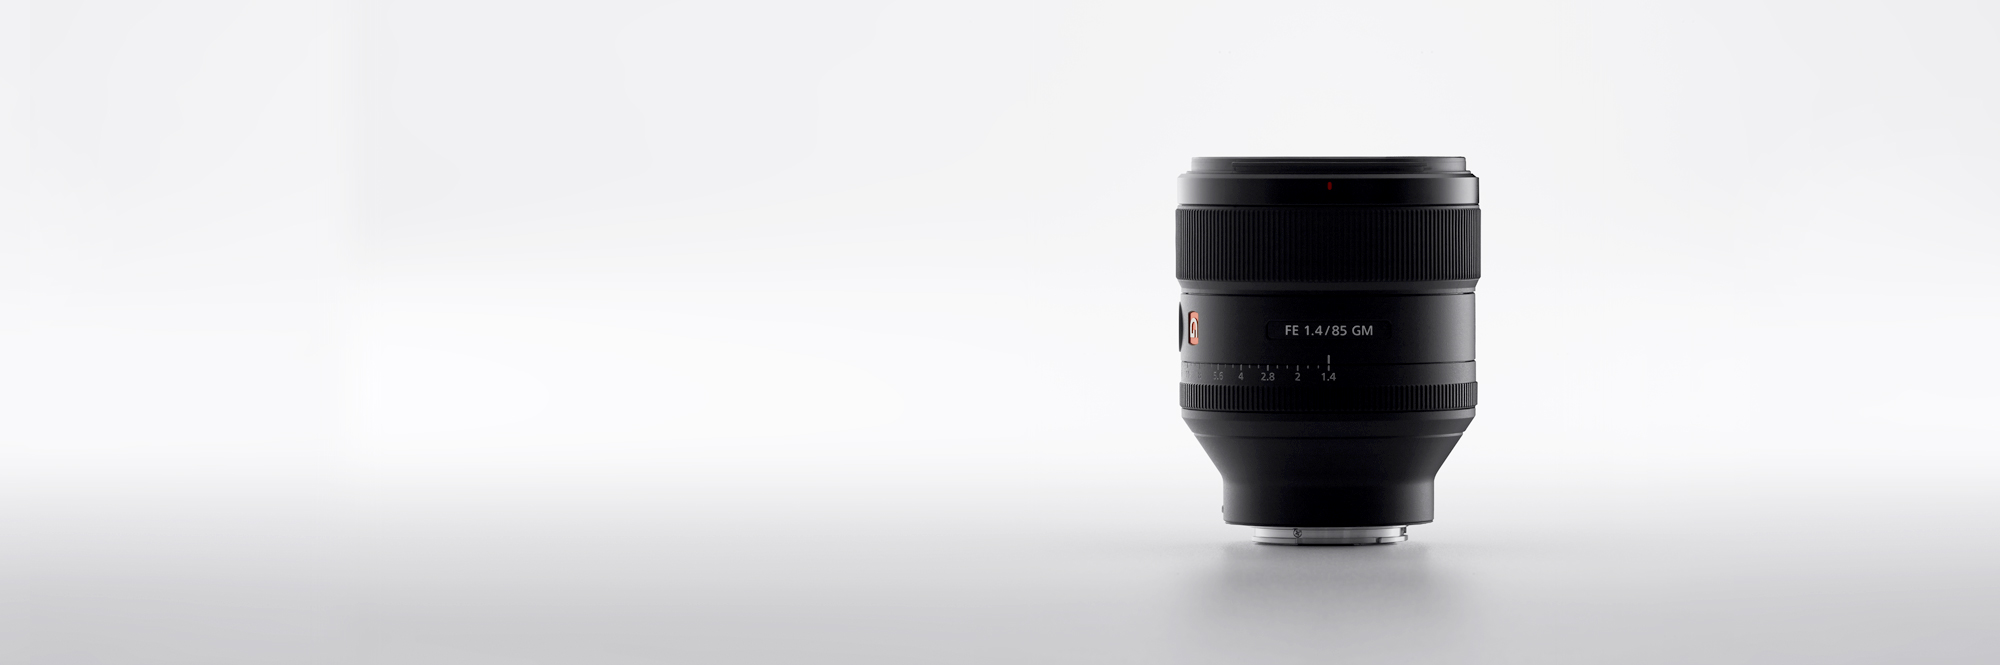 G MASTER FE 85mm F1.4 GM Commentary of Engineers - FE 85mm F1.4 GM 開発者インタビュー -